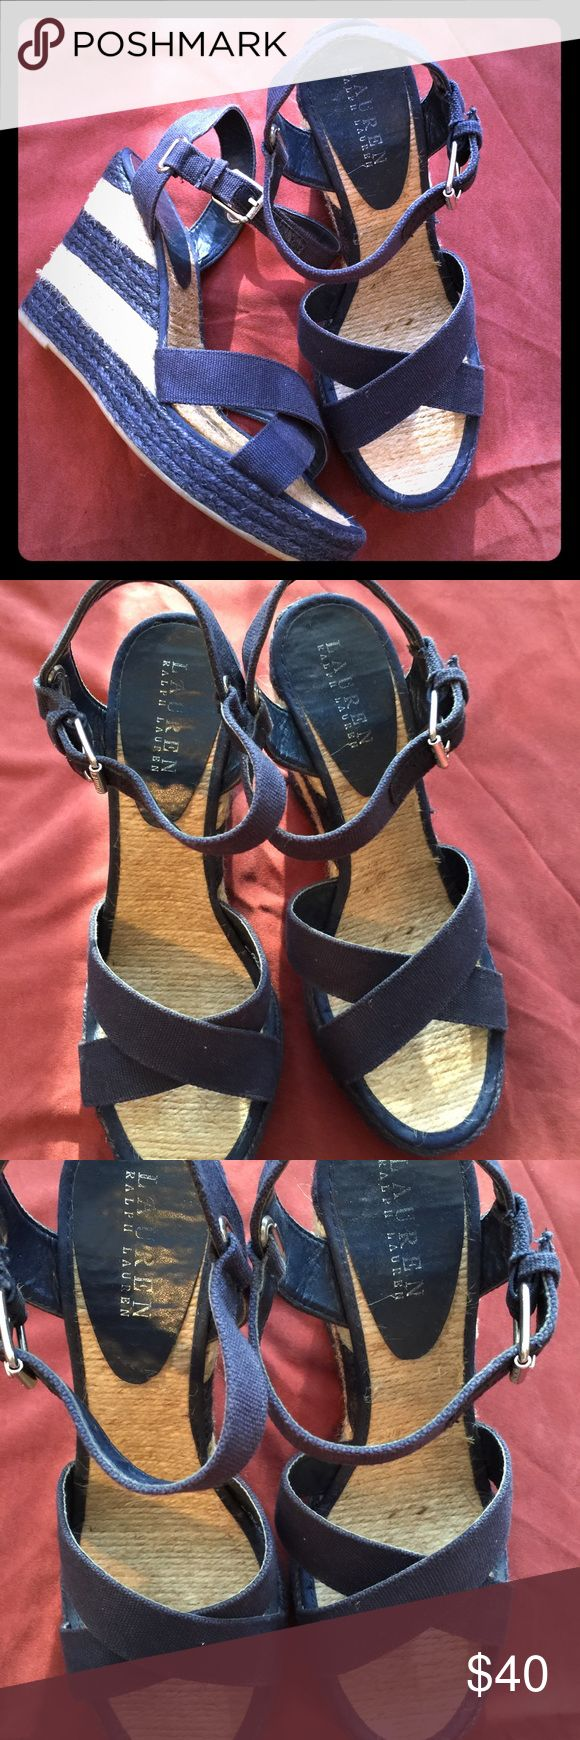 "RALPH LAUREN Canvas Navy Blue Wedges Navy blue Ralph Lauren canvas sandals with woven wedge heels. 4"" wedge with 1"" platform. Lauren Ralph Lauren Shoes Wedges"